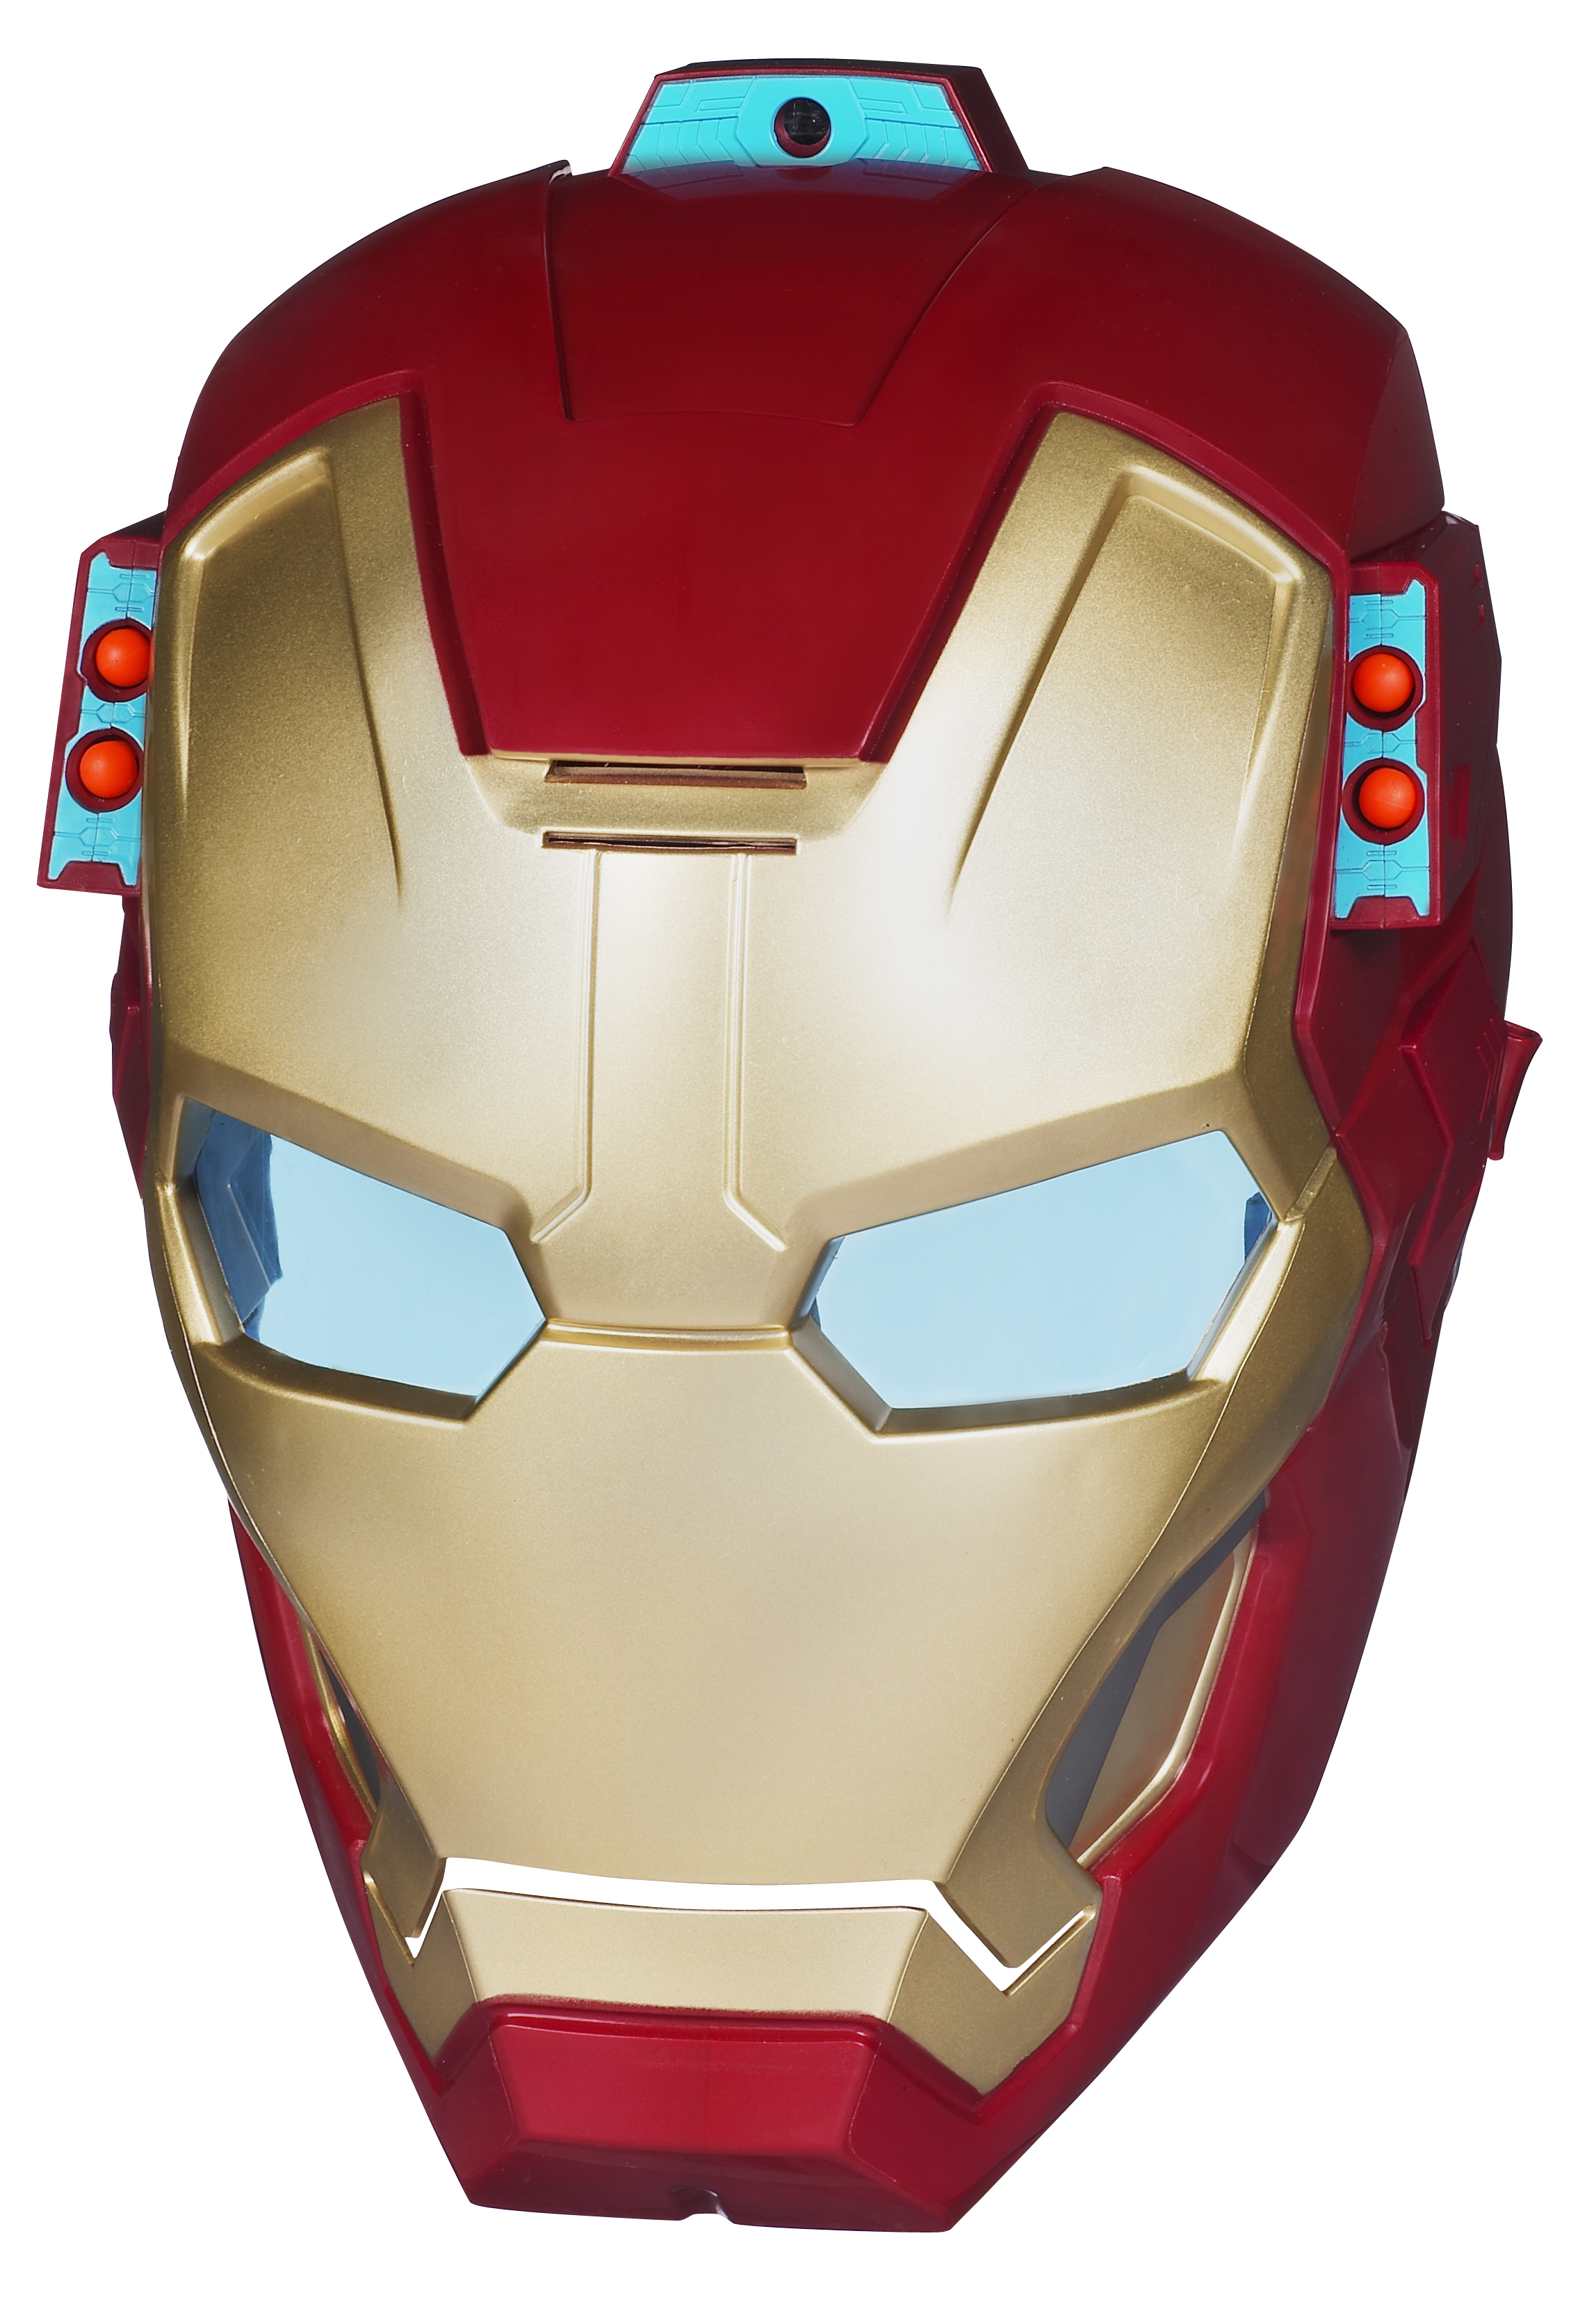 Marvel Iron Man 3 Arc FX Mission Mask from Hasbro